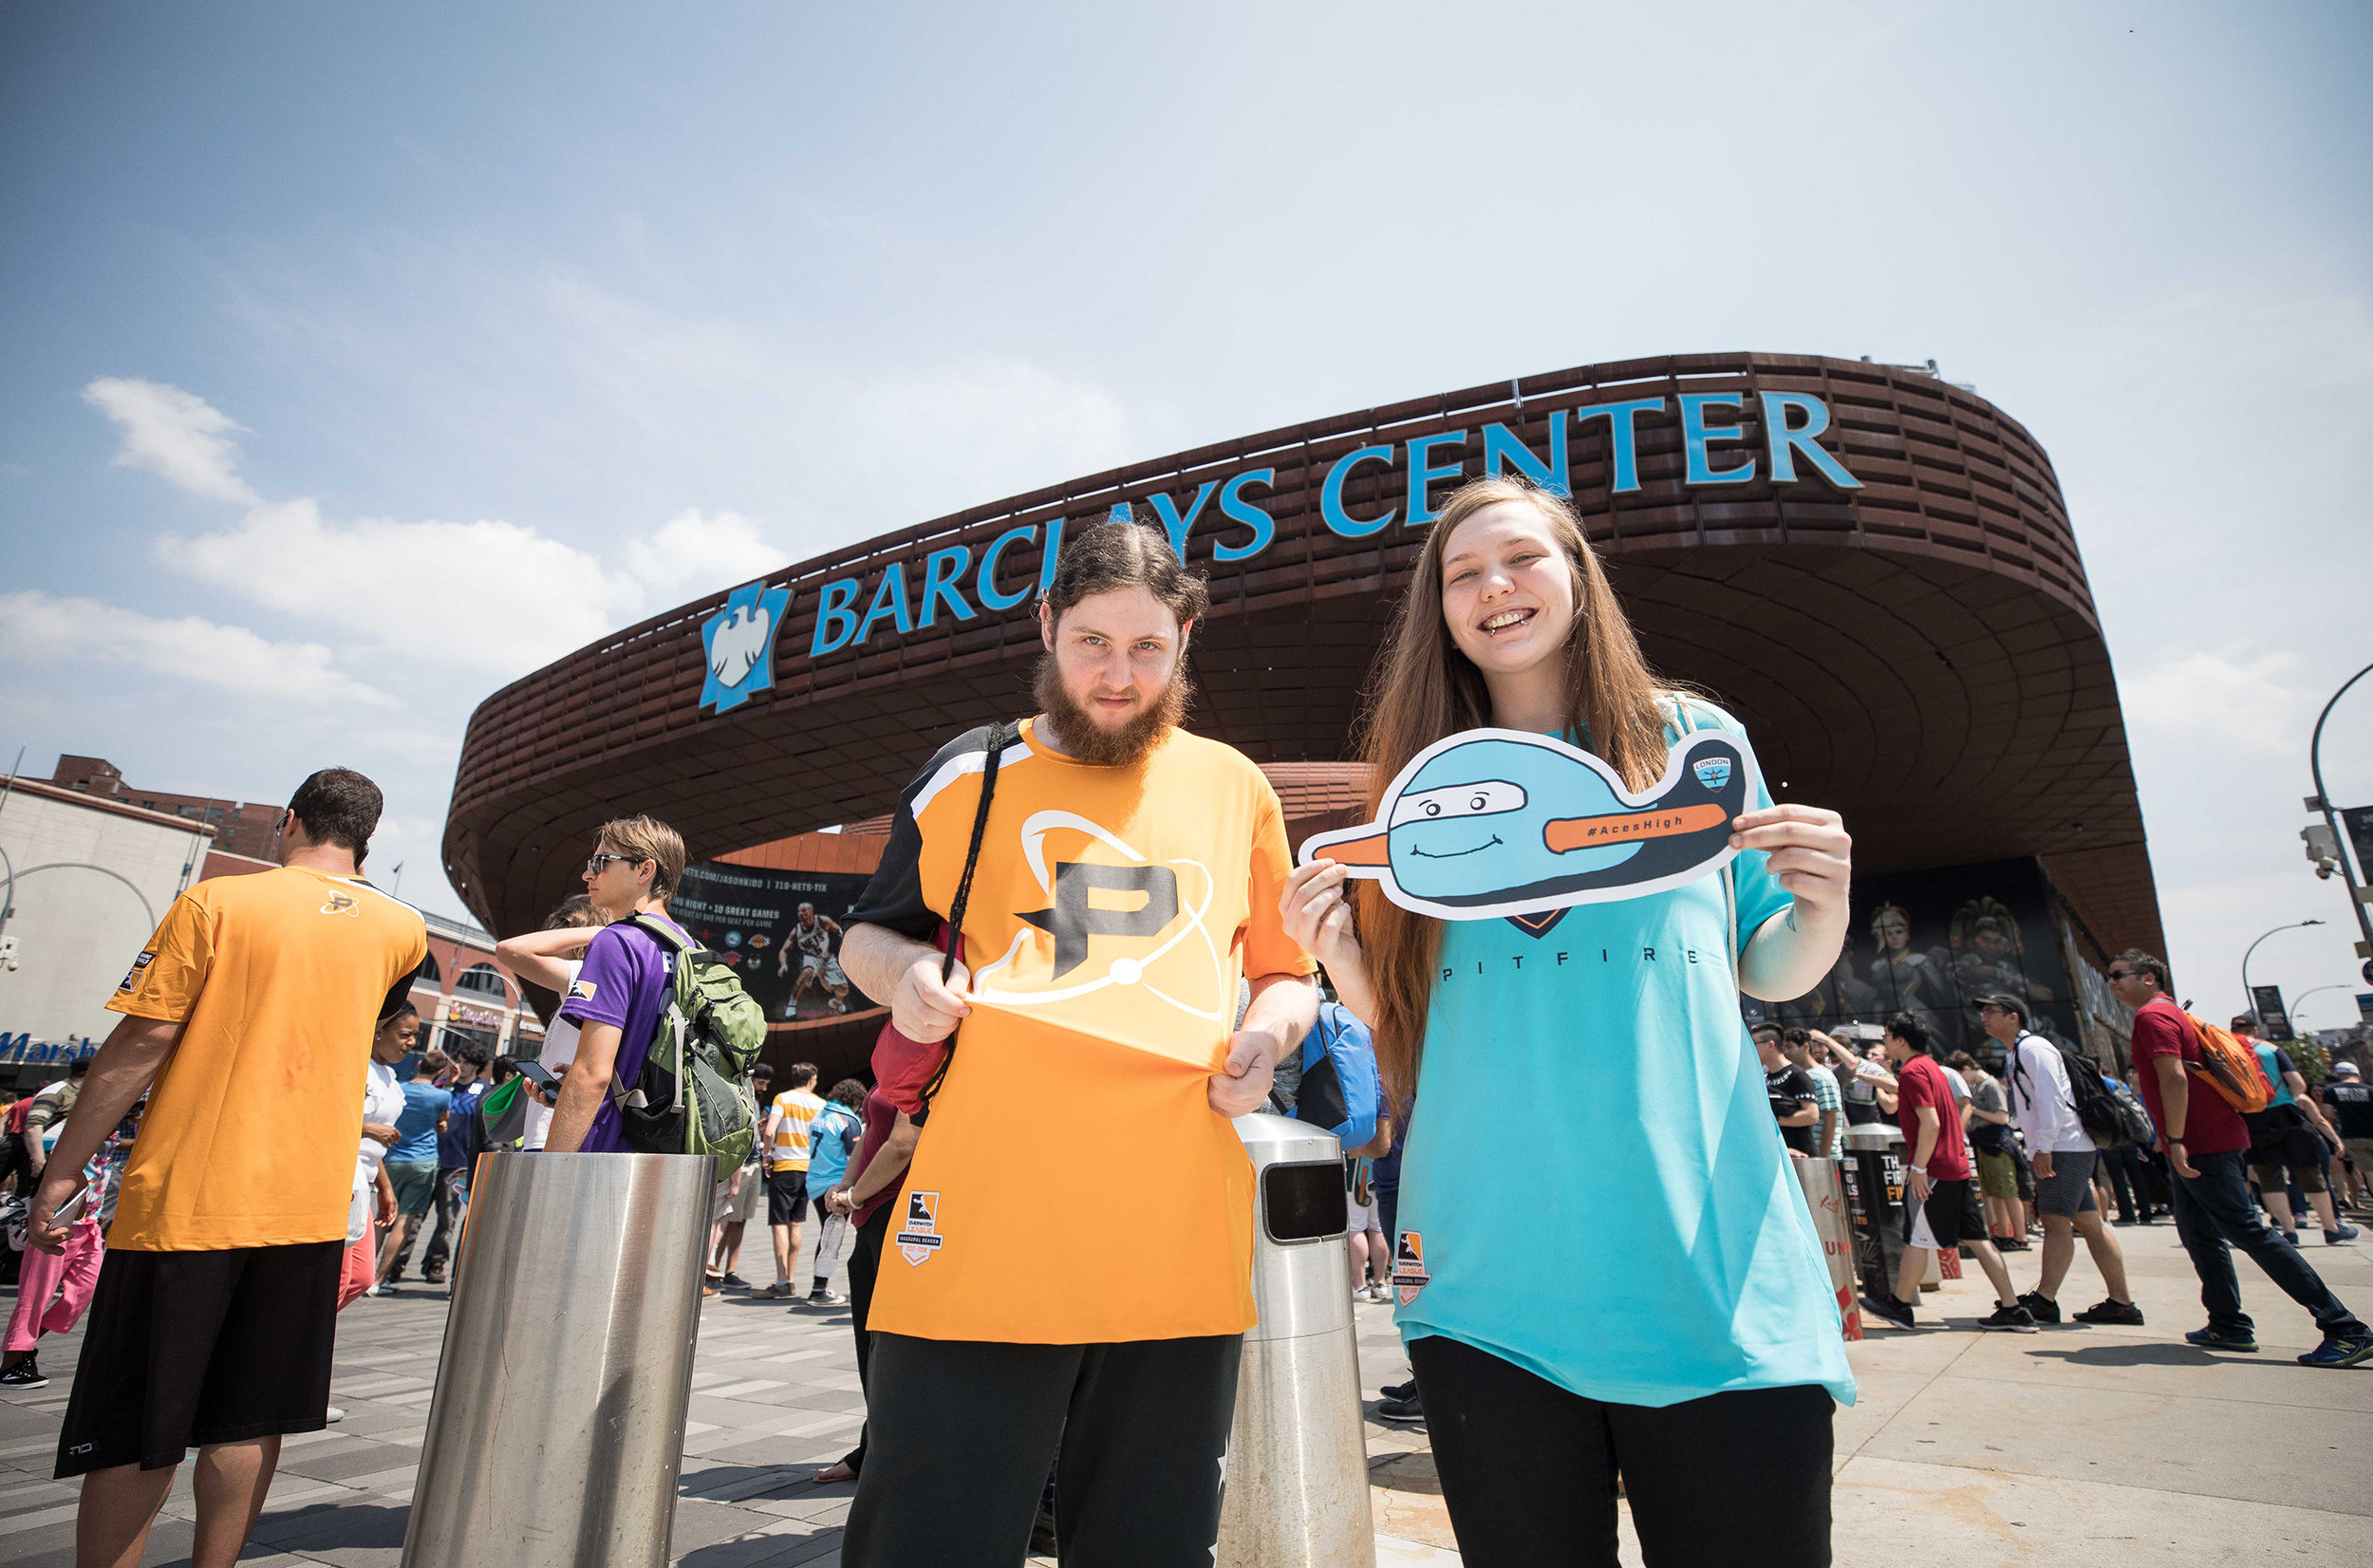 Overwatch League Grand Finals, fans in front of arena showing their support for London Spitfire and Philadelphia Fusion at Barclays Center on July 27, 2018 in Brooklyn, New York.  Photo by Hannah Smith / ESPAT Media